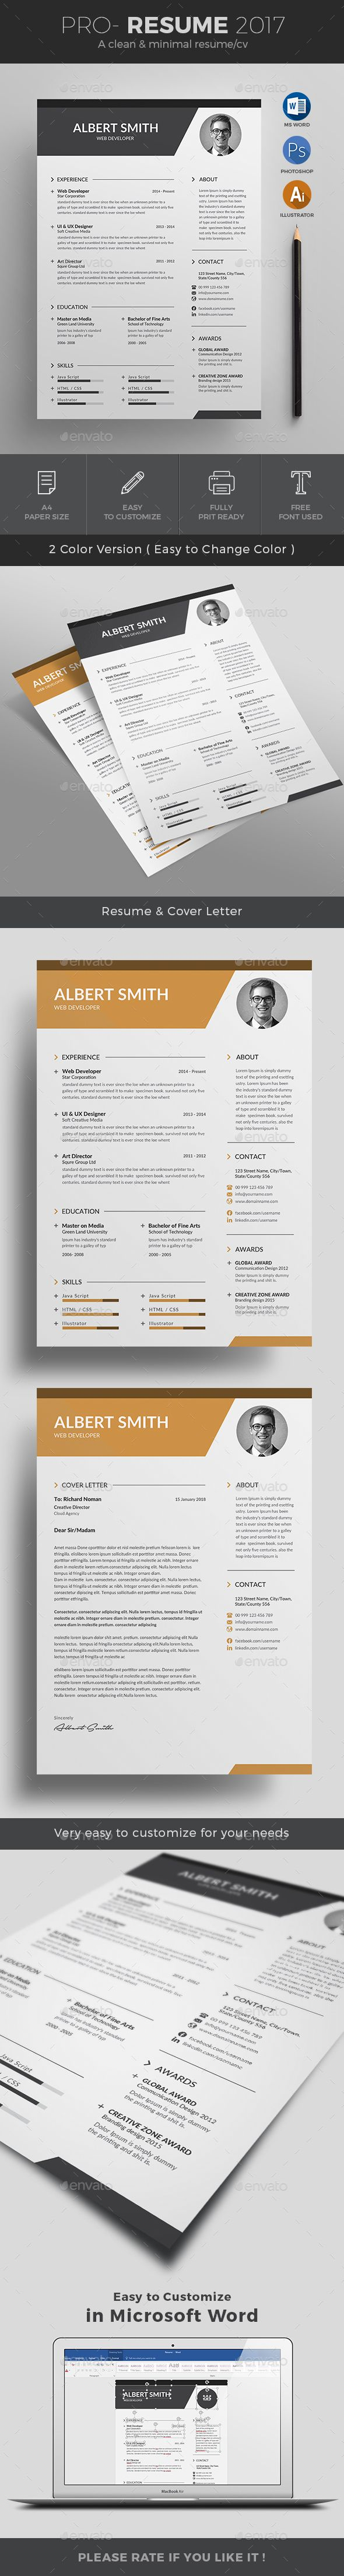 resume - Free Cover Letter Template Microsoft Word